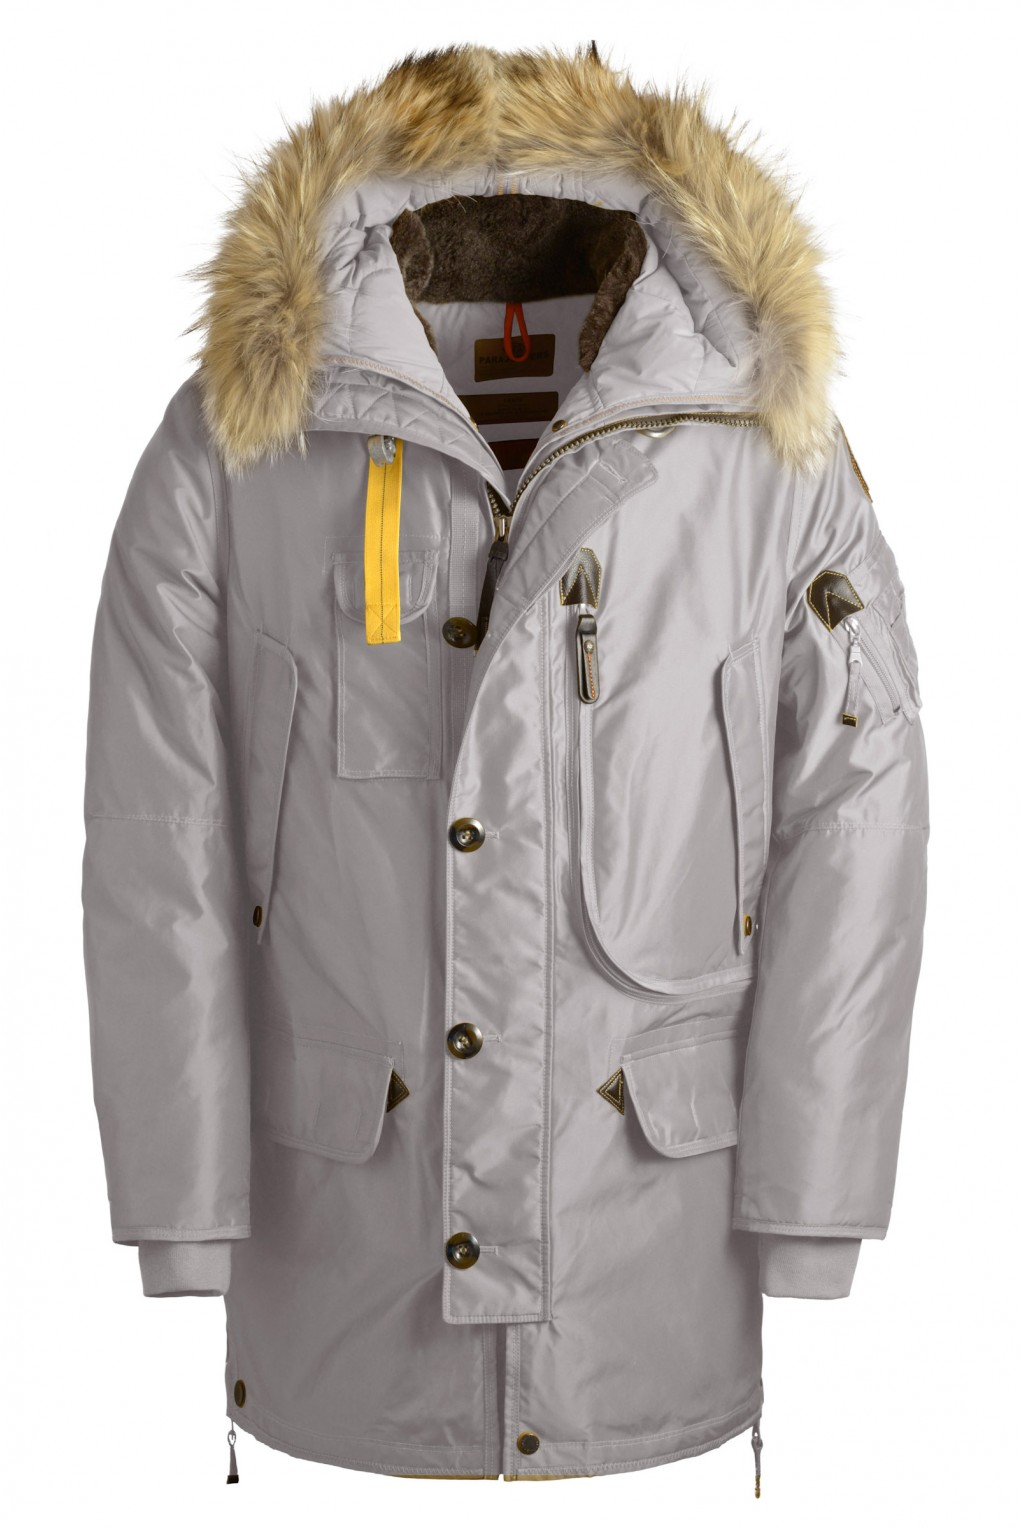 parajumpers KODIAK man outerwear Sand